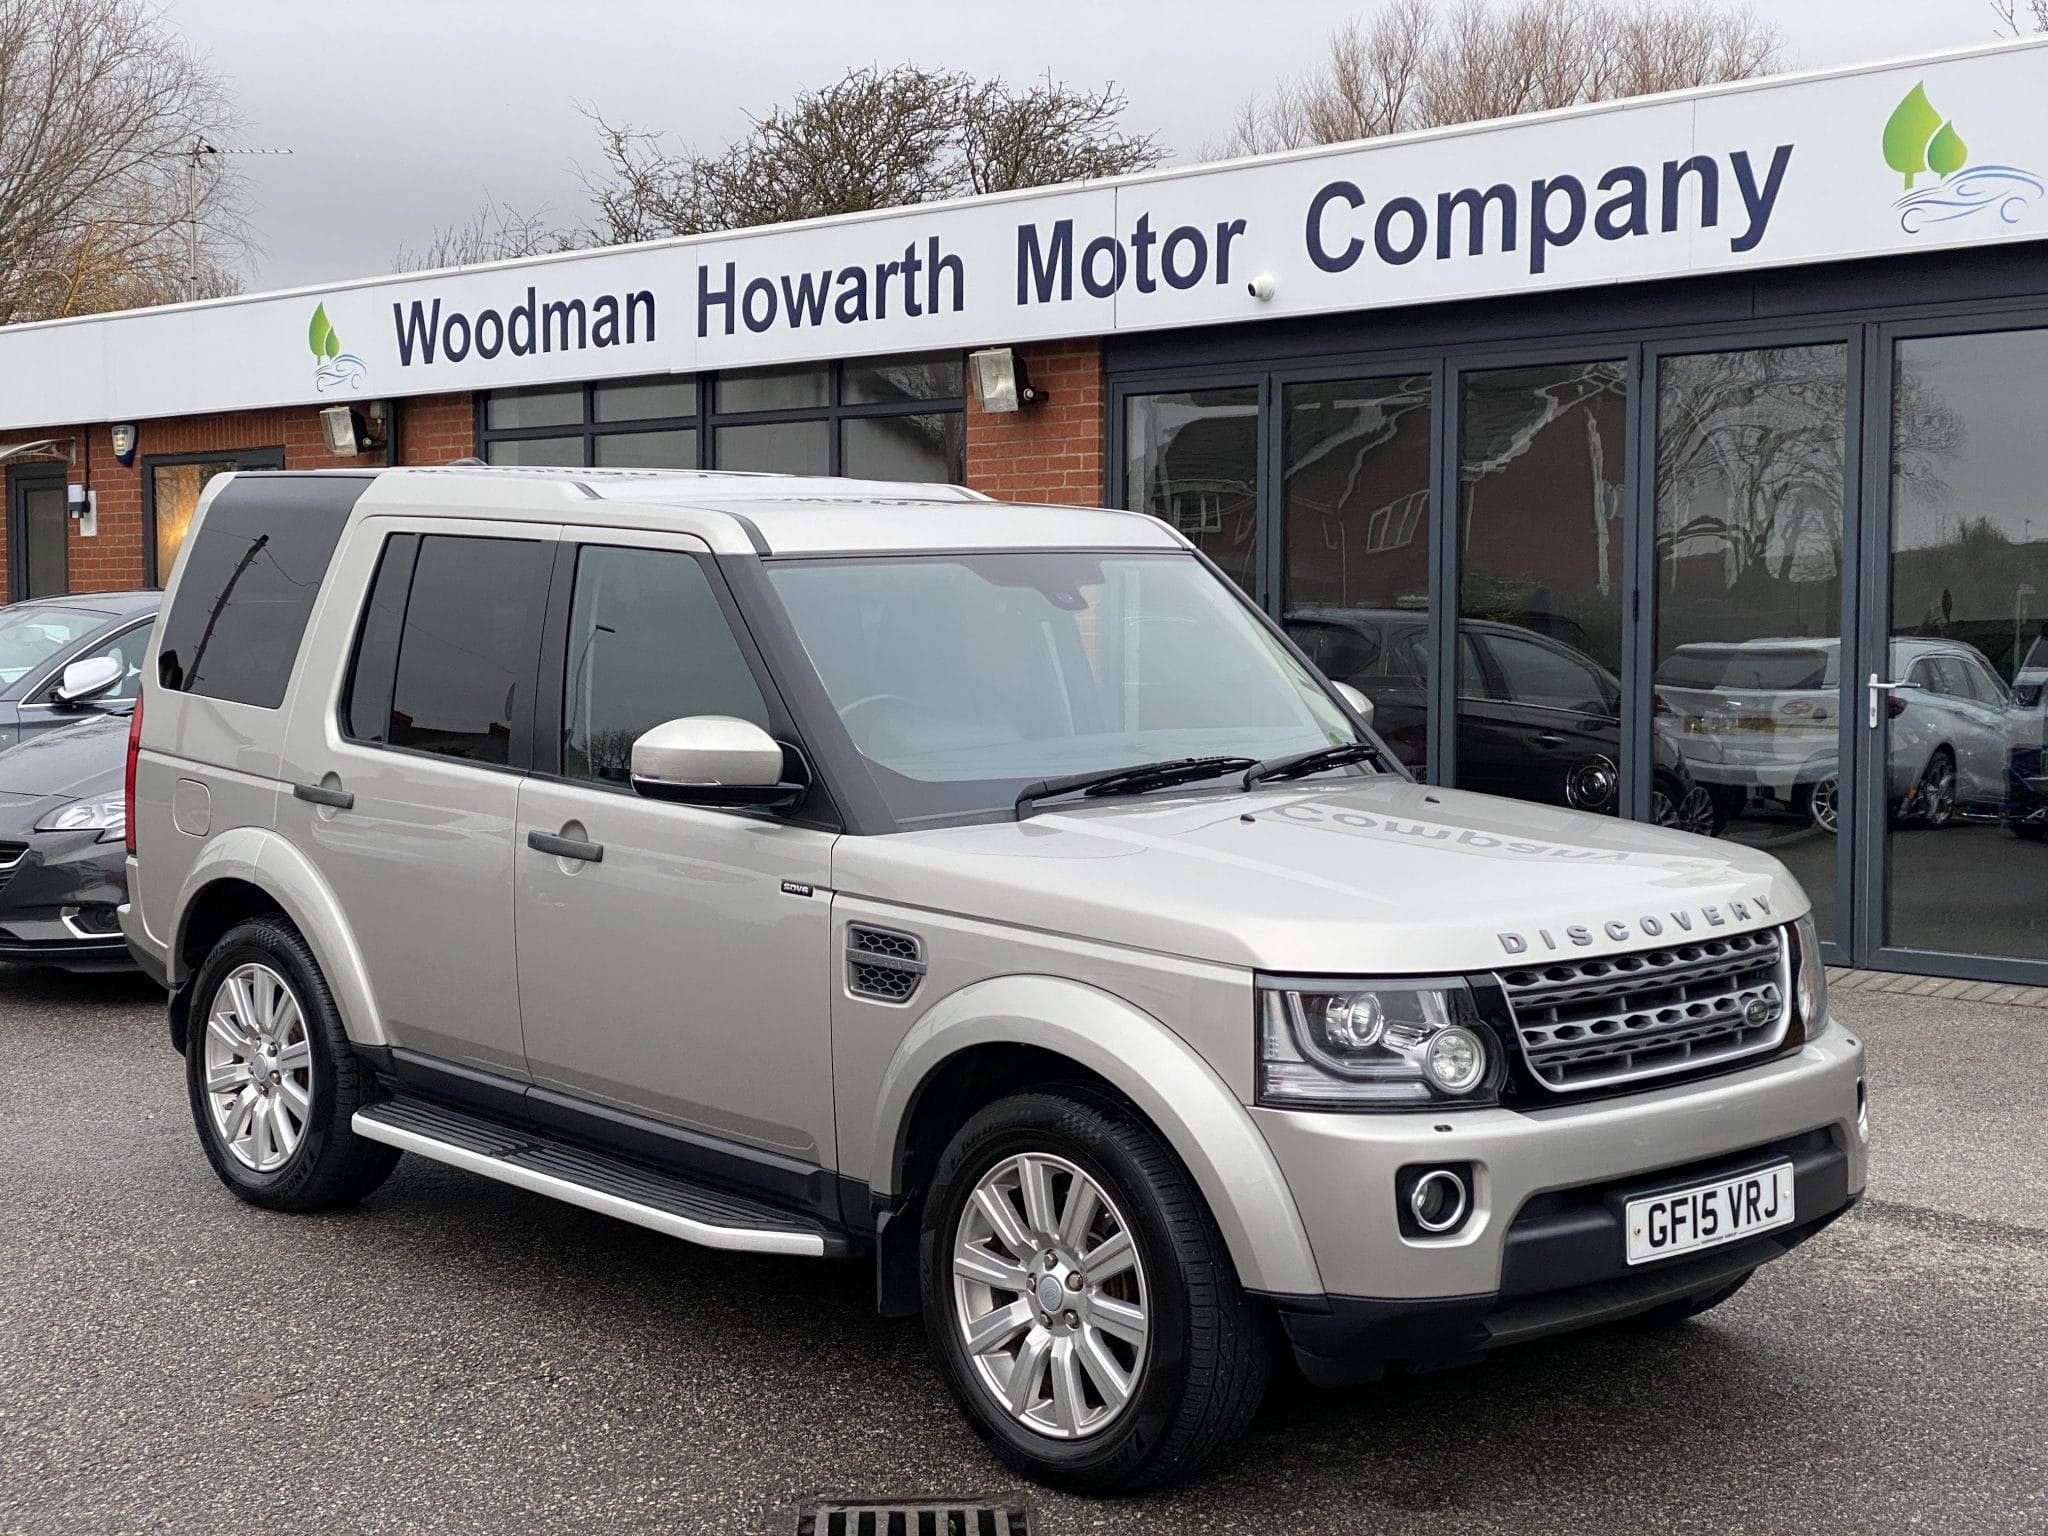 2015 15 LAND ROVER DISCOVERY 4 3.0SD V6 SE AUTO 255 BHP 7 SEATER 1 Prev Owner Only 34K Mls FLRSH Leather Electric Seats